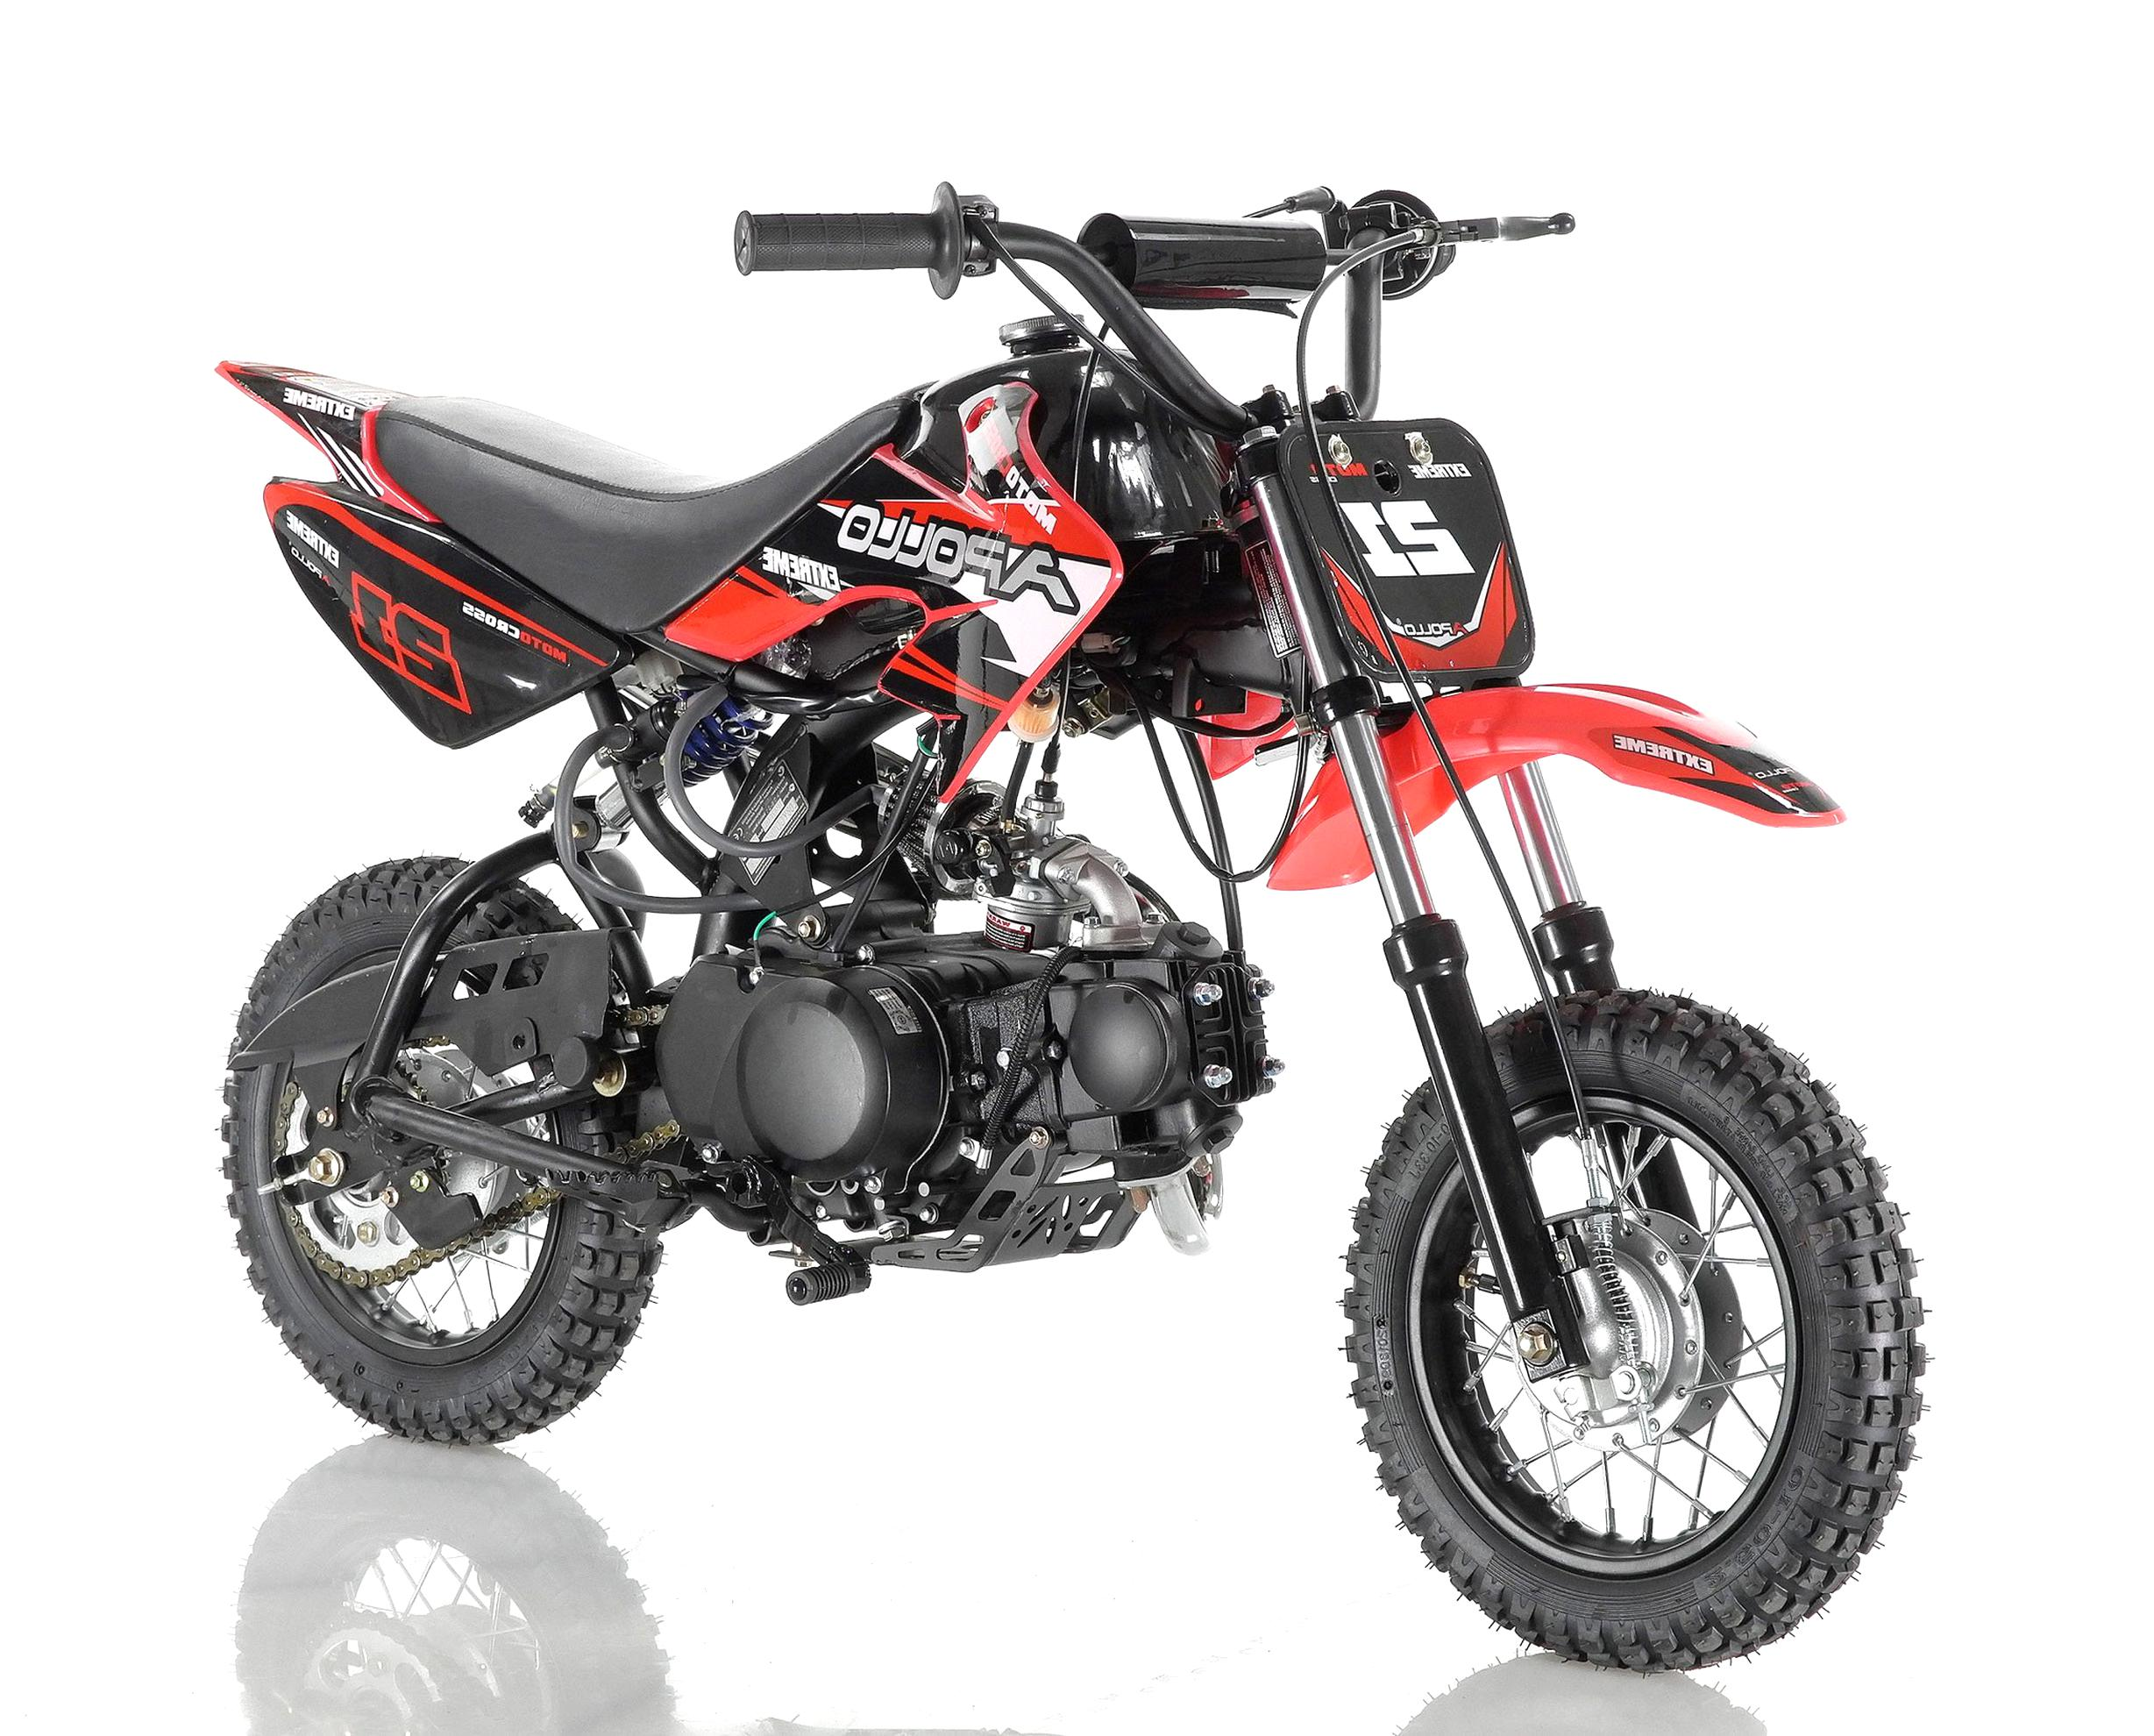 Remarkable Dirt Bike 70 For Sale Only 2 Left At 75 Machost Co Dining Chair Design Ideas Machostcouk